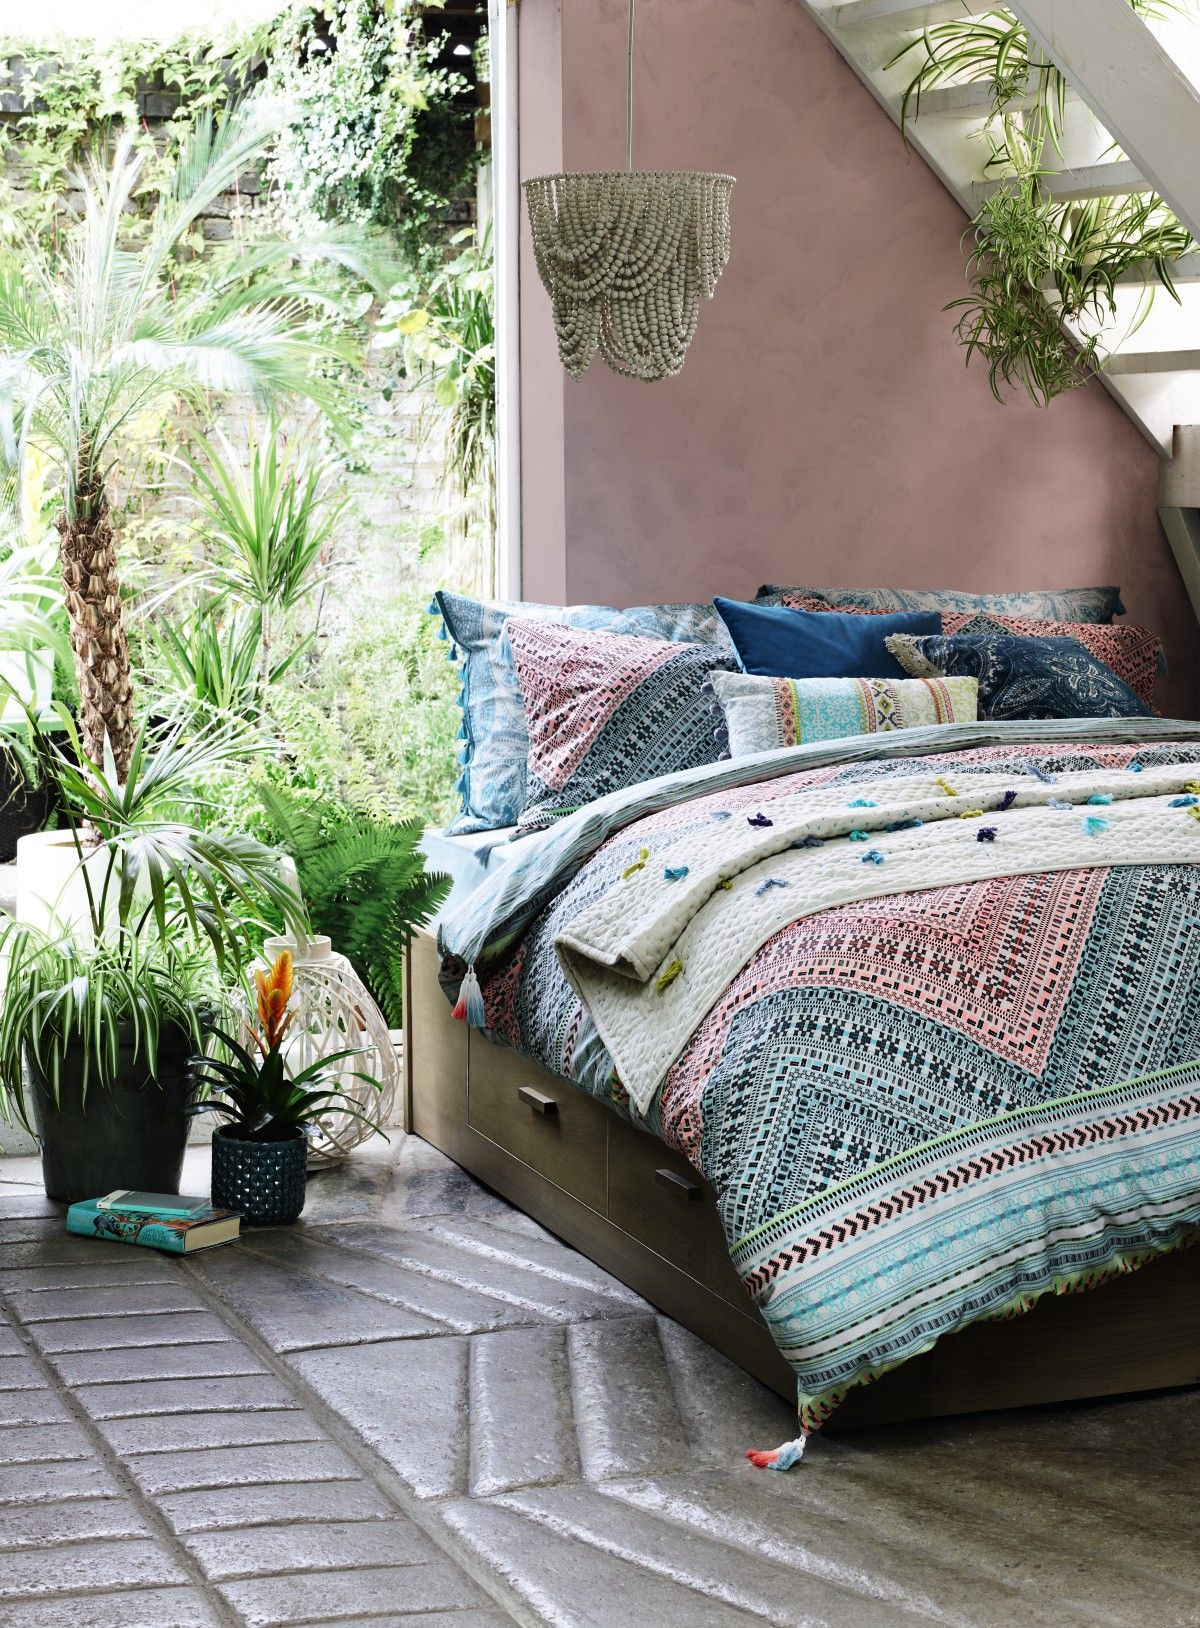 Style tip turn your bedroom into an exotic hideaway with layered